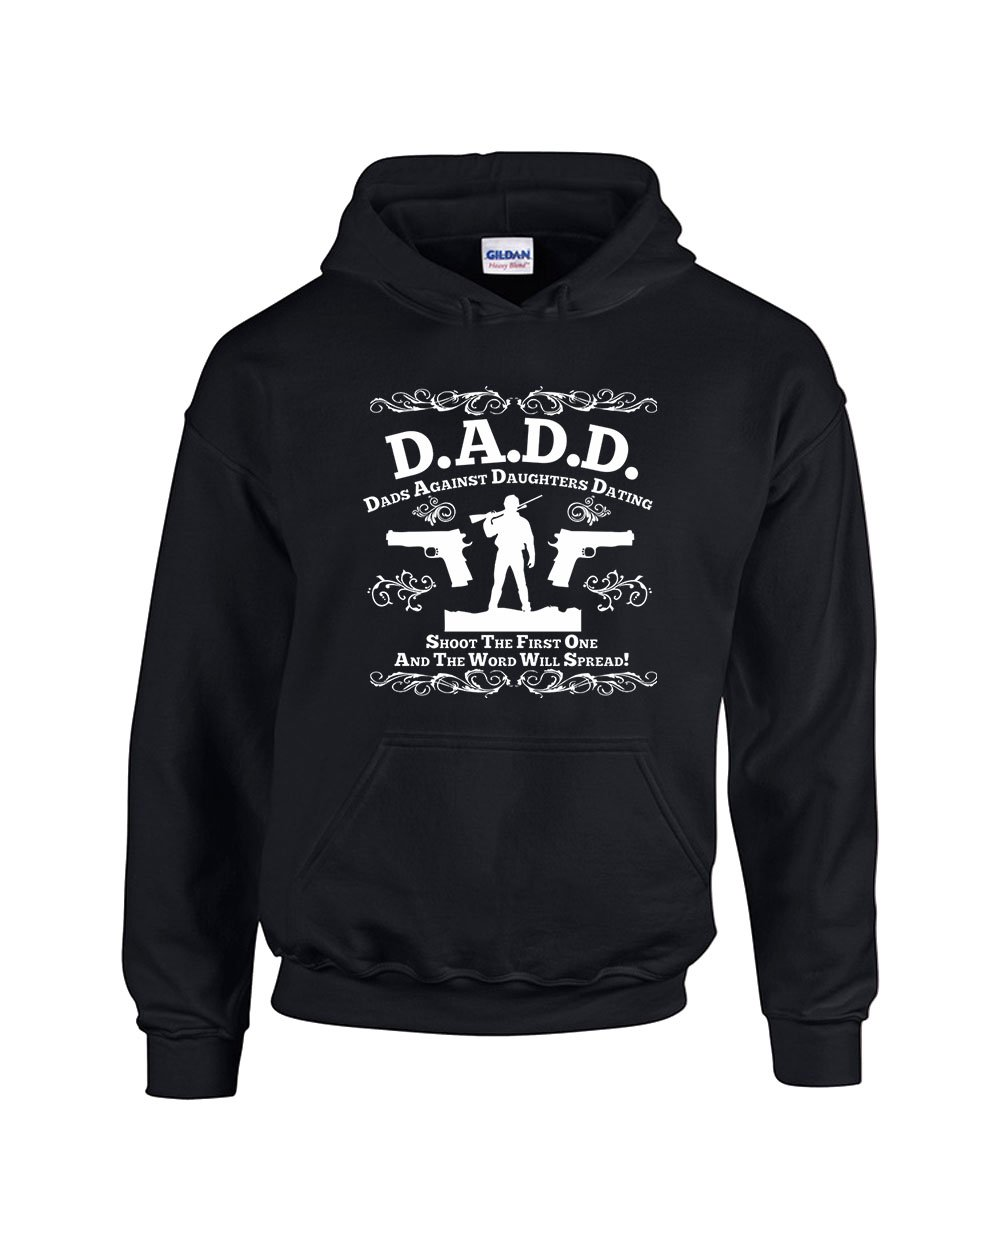 Father's Day Hunter D.a.d.d. Dads Against Daughters Dating Guns S Shirts